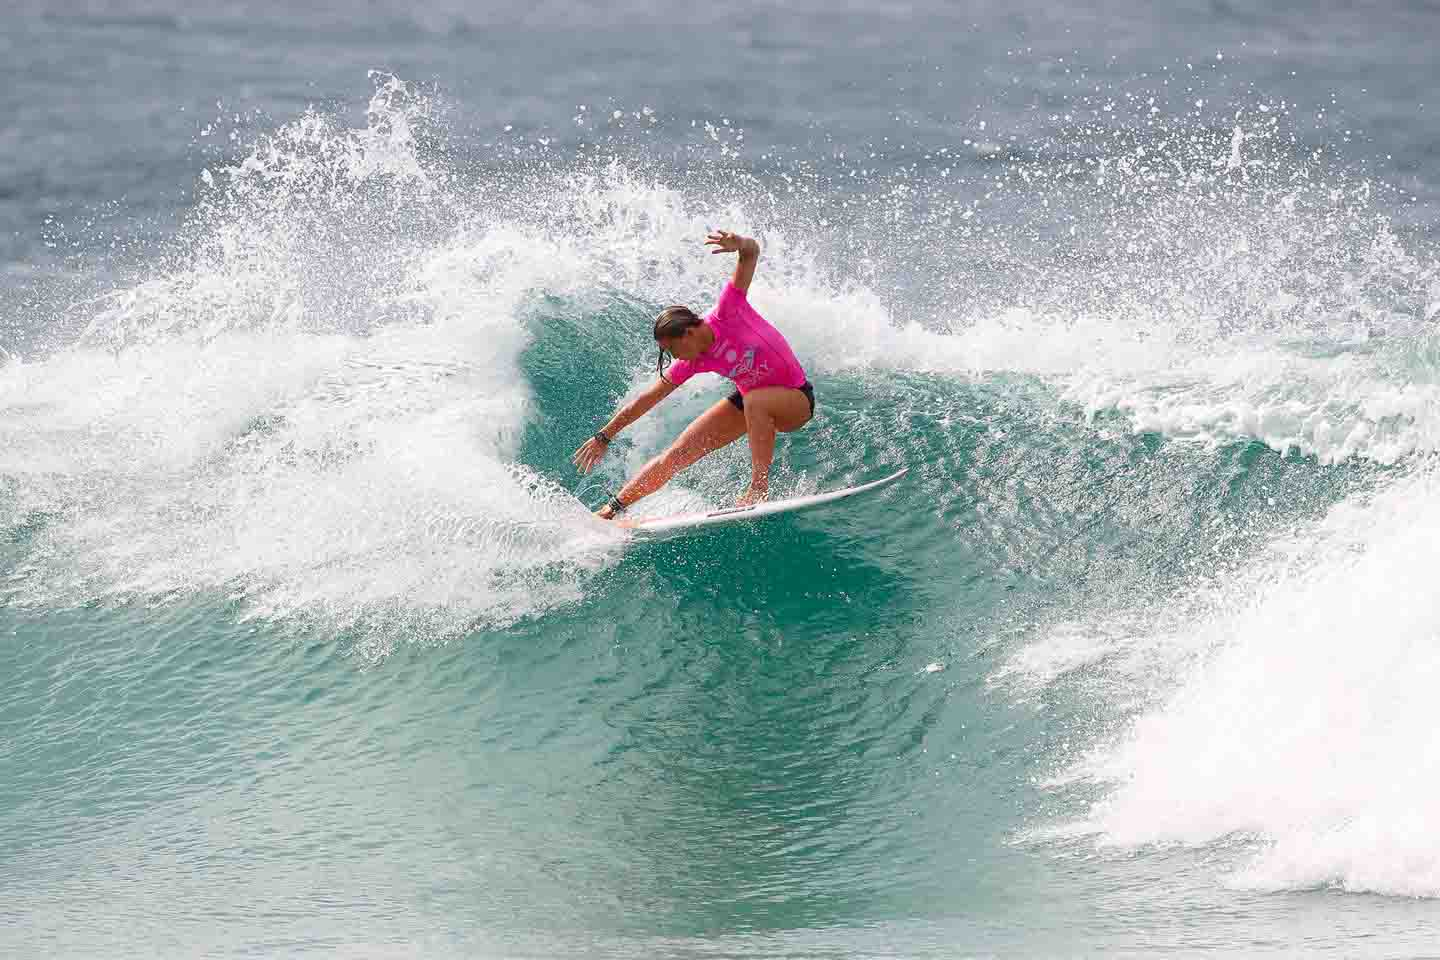 Surf Culture: Then and Now